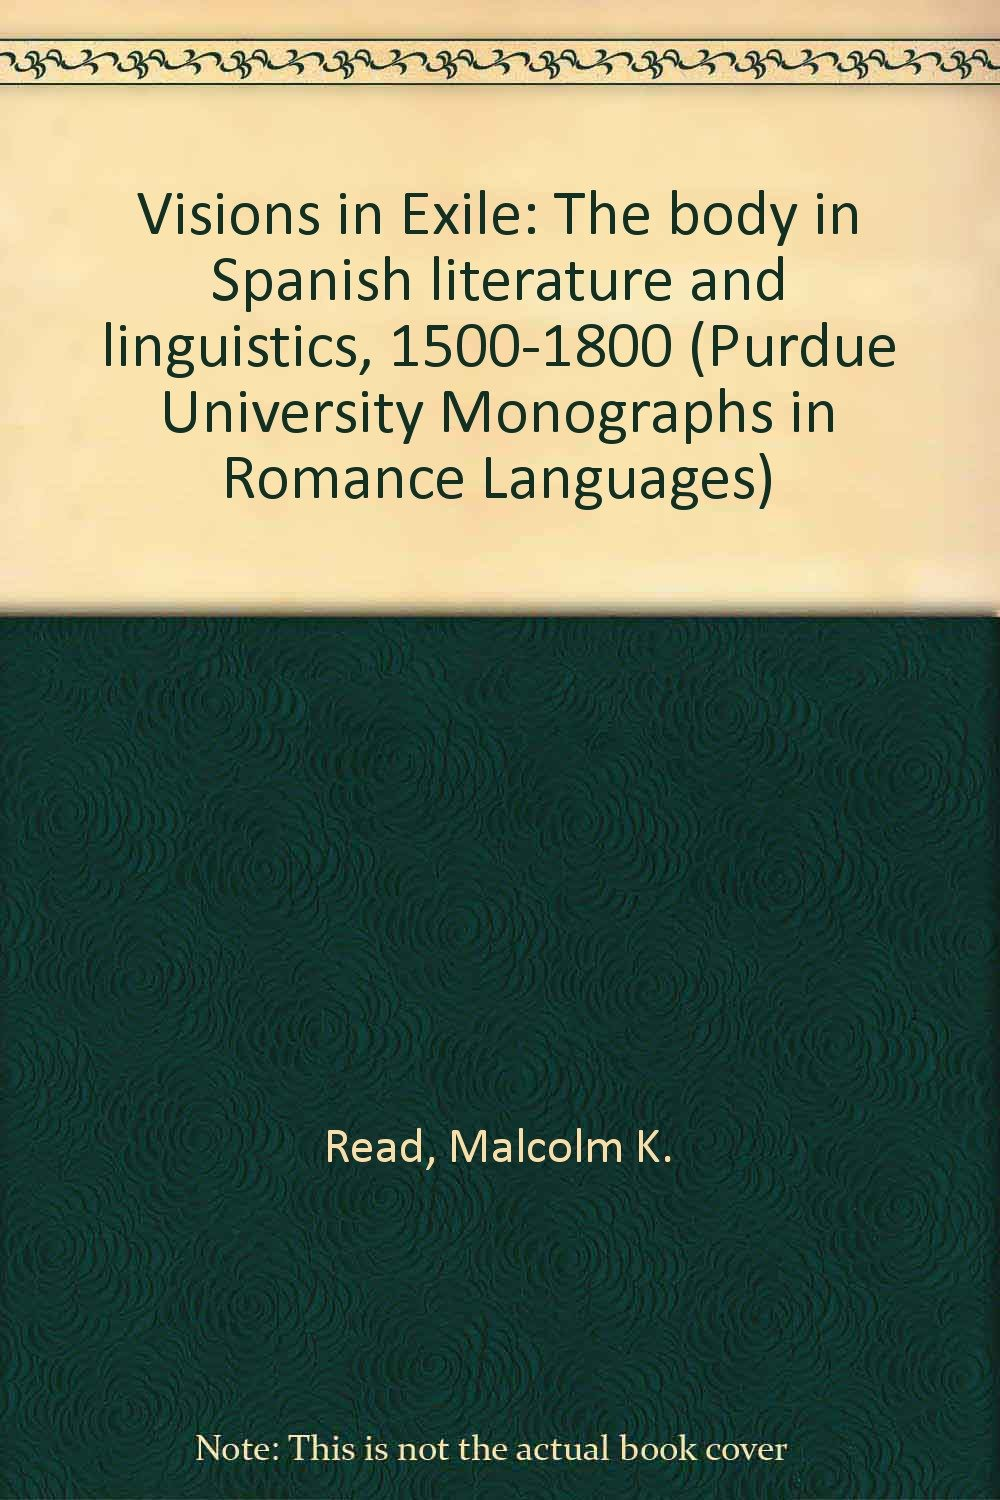 Visions in Exile: The body in Spanish literature and linguistics, 1500-1800 (Purdue University Monographs in Romance Languages) free download